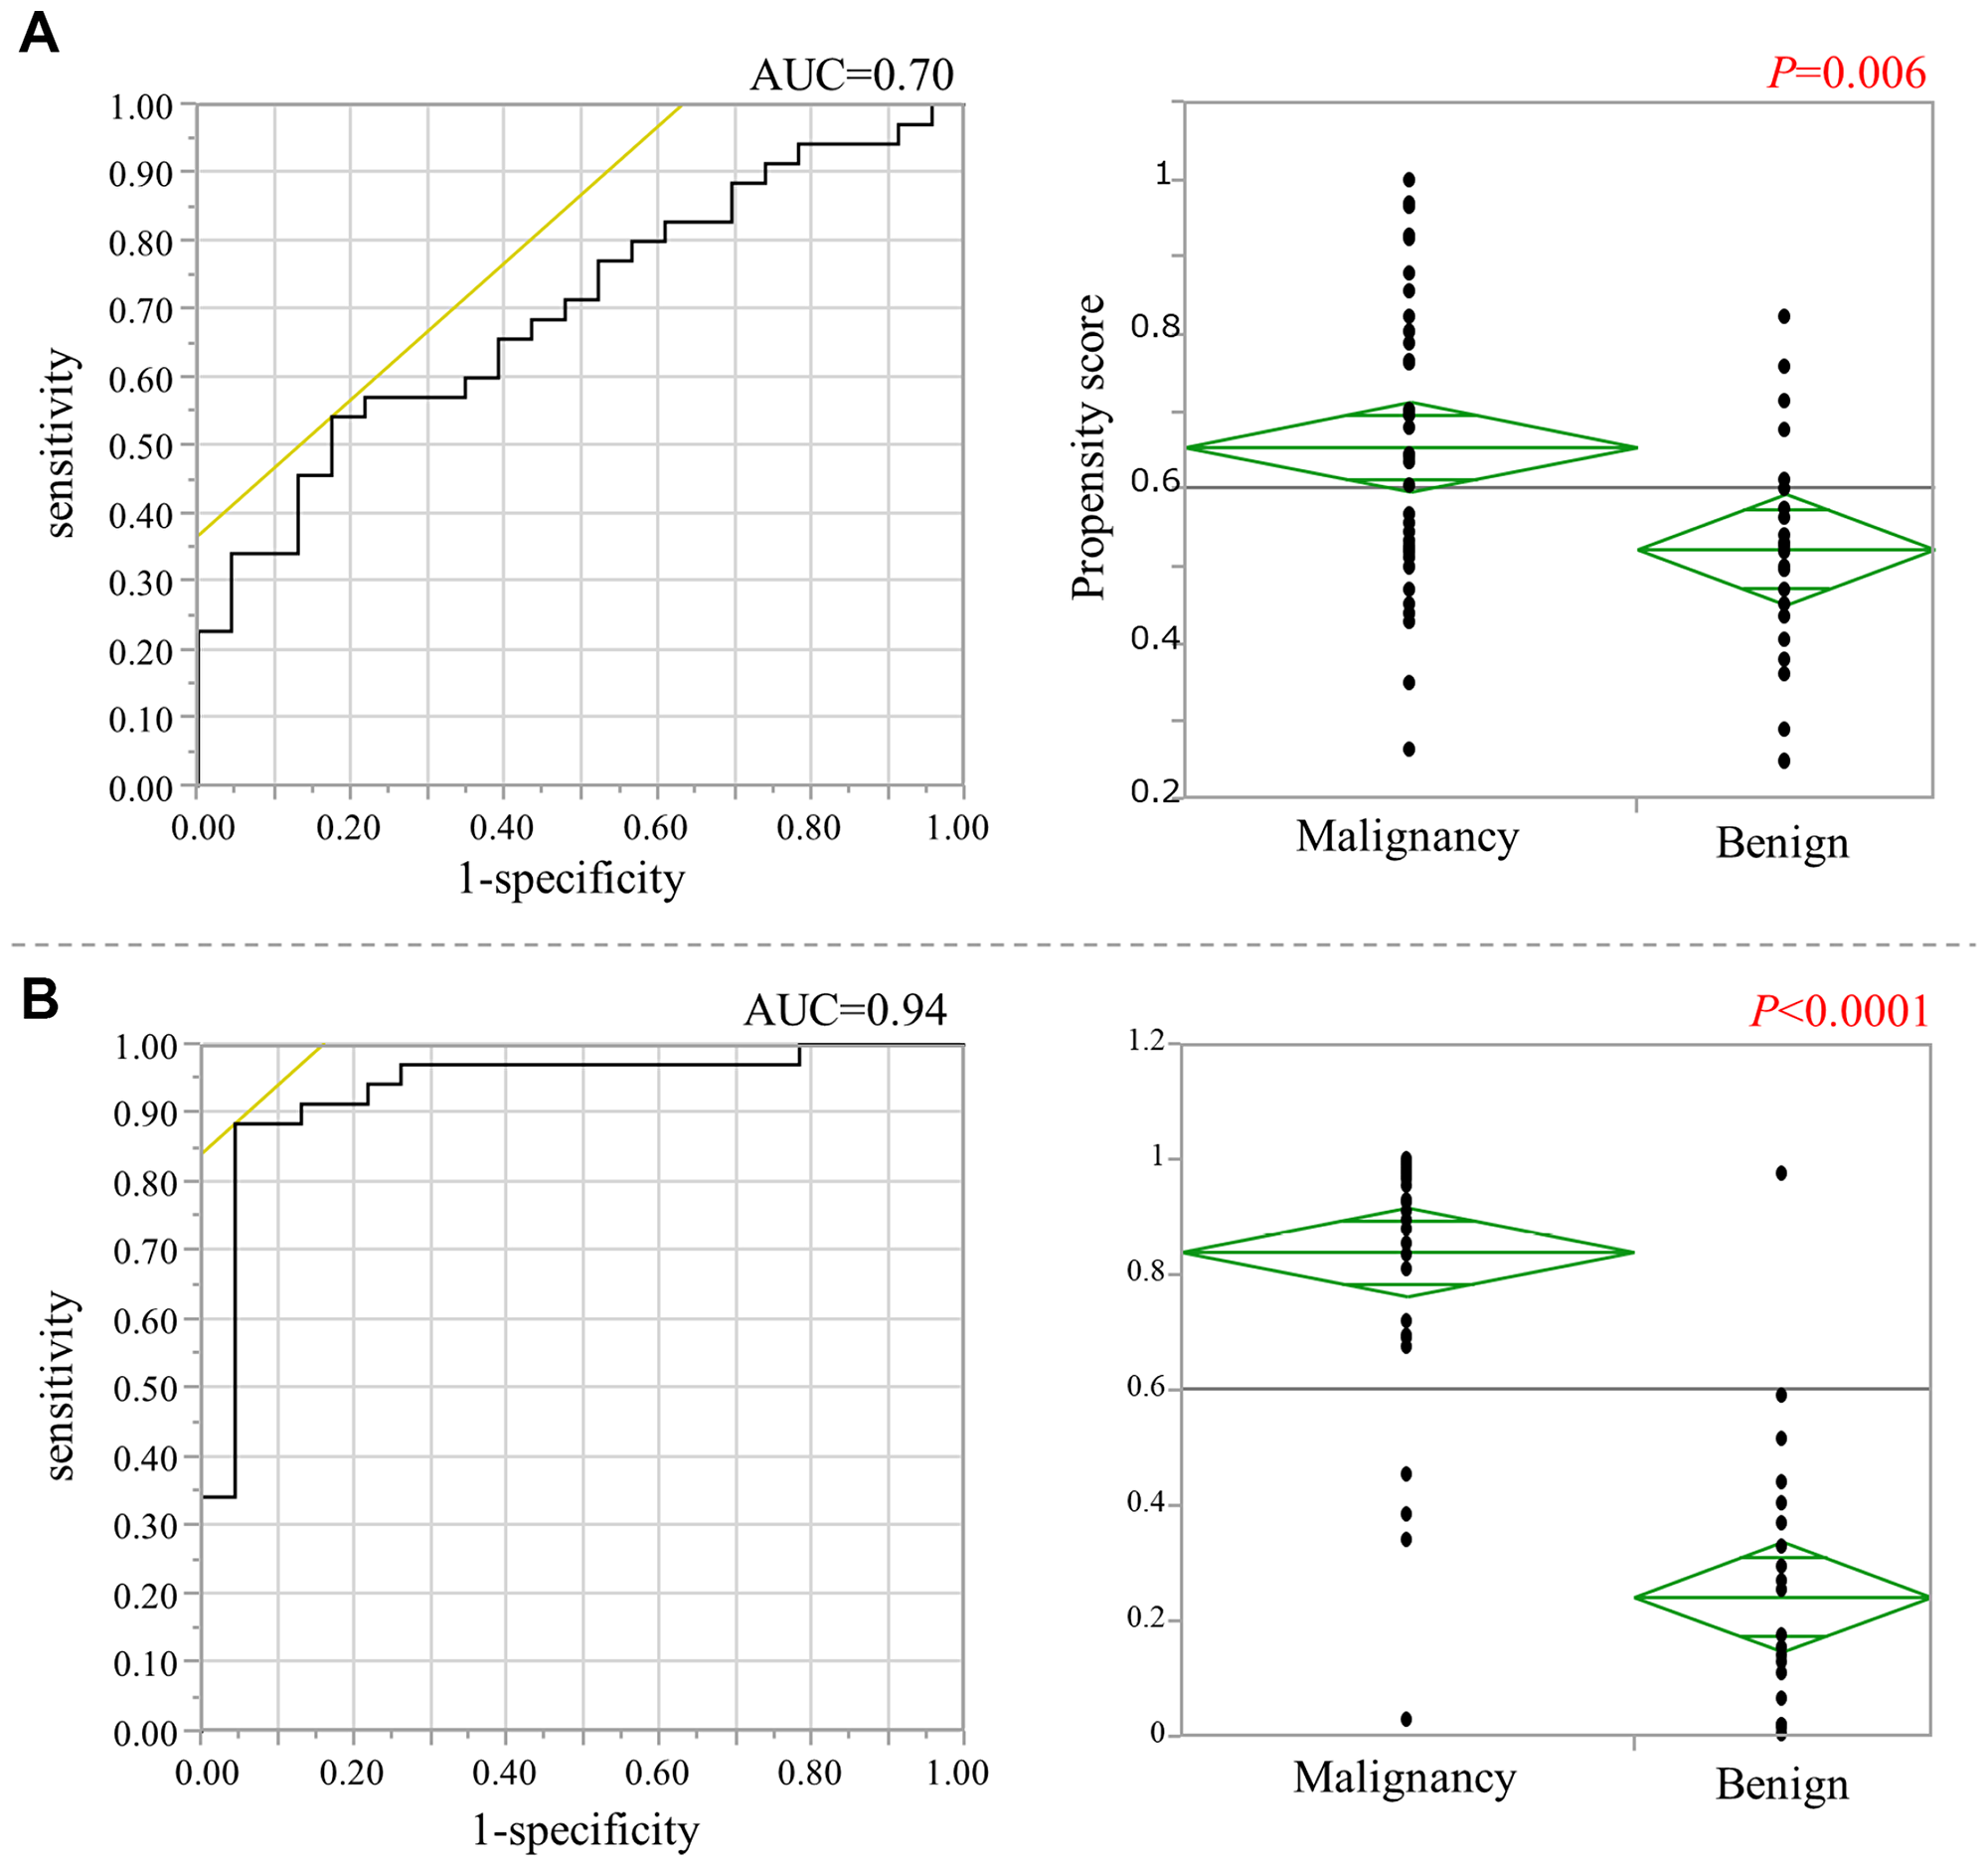 The calculation of the propensity scores for non-cancerous mucosa.